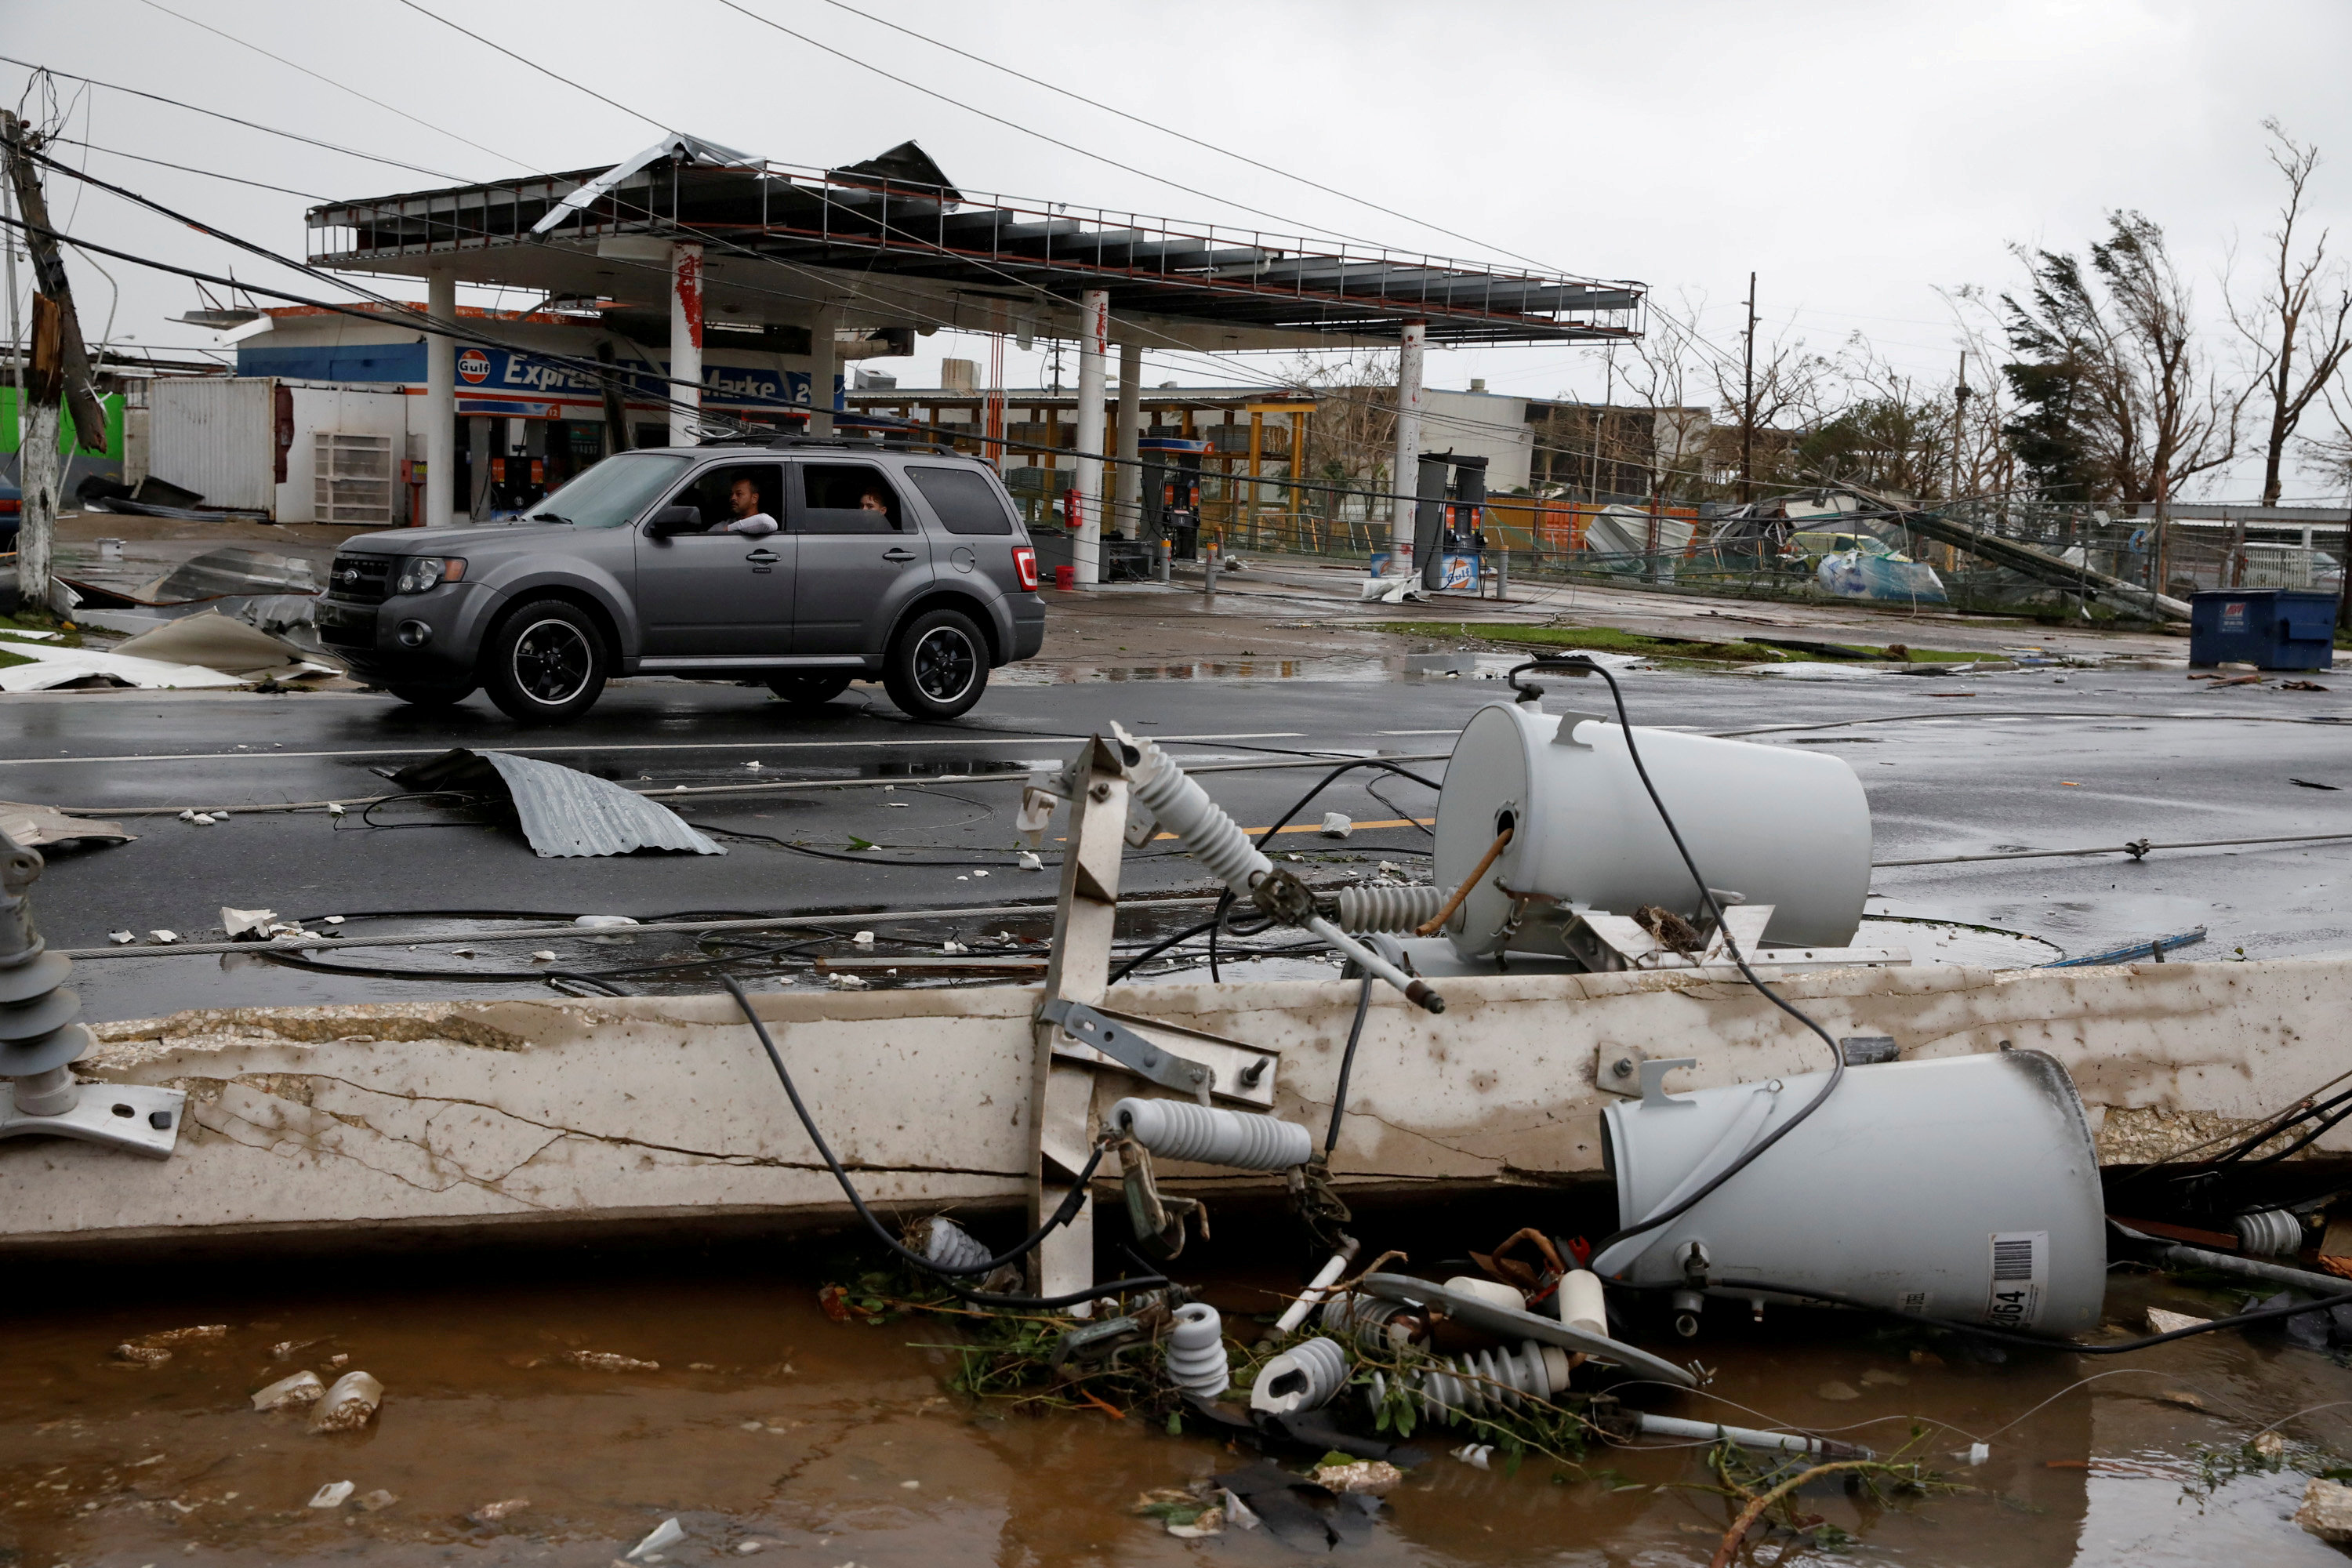 Special Report: The bankrupt utility behind Puerto Rico's power crisis